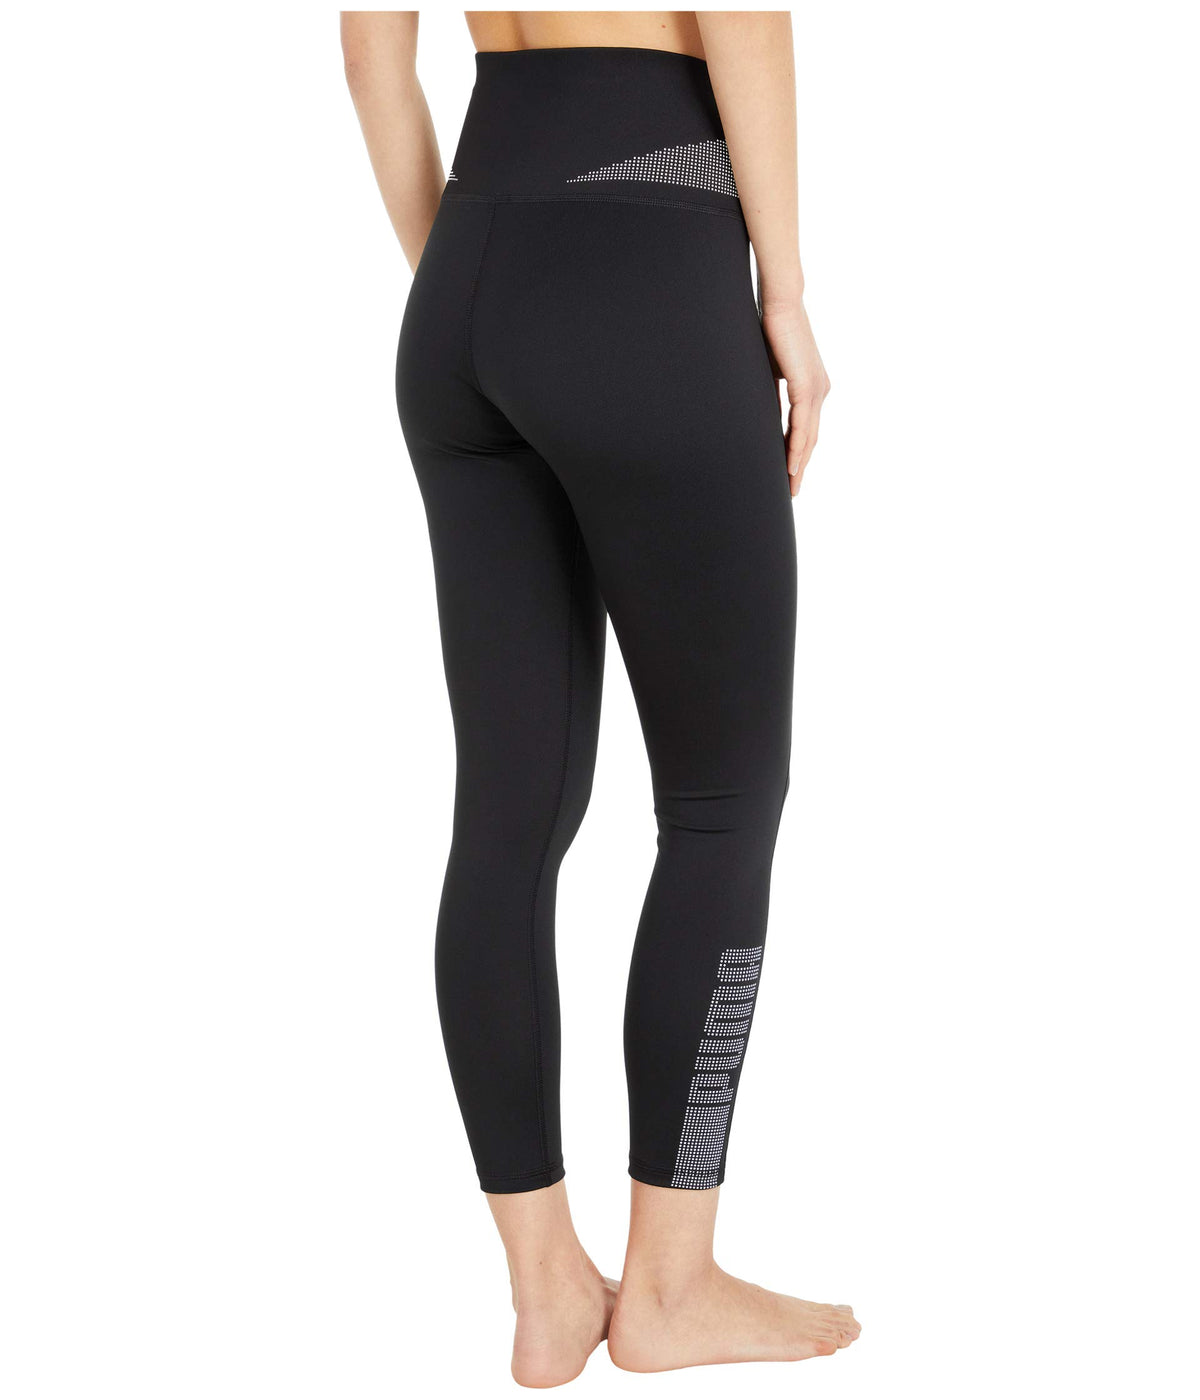 EVOSTRIPE High-Waist 7/8 Tights